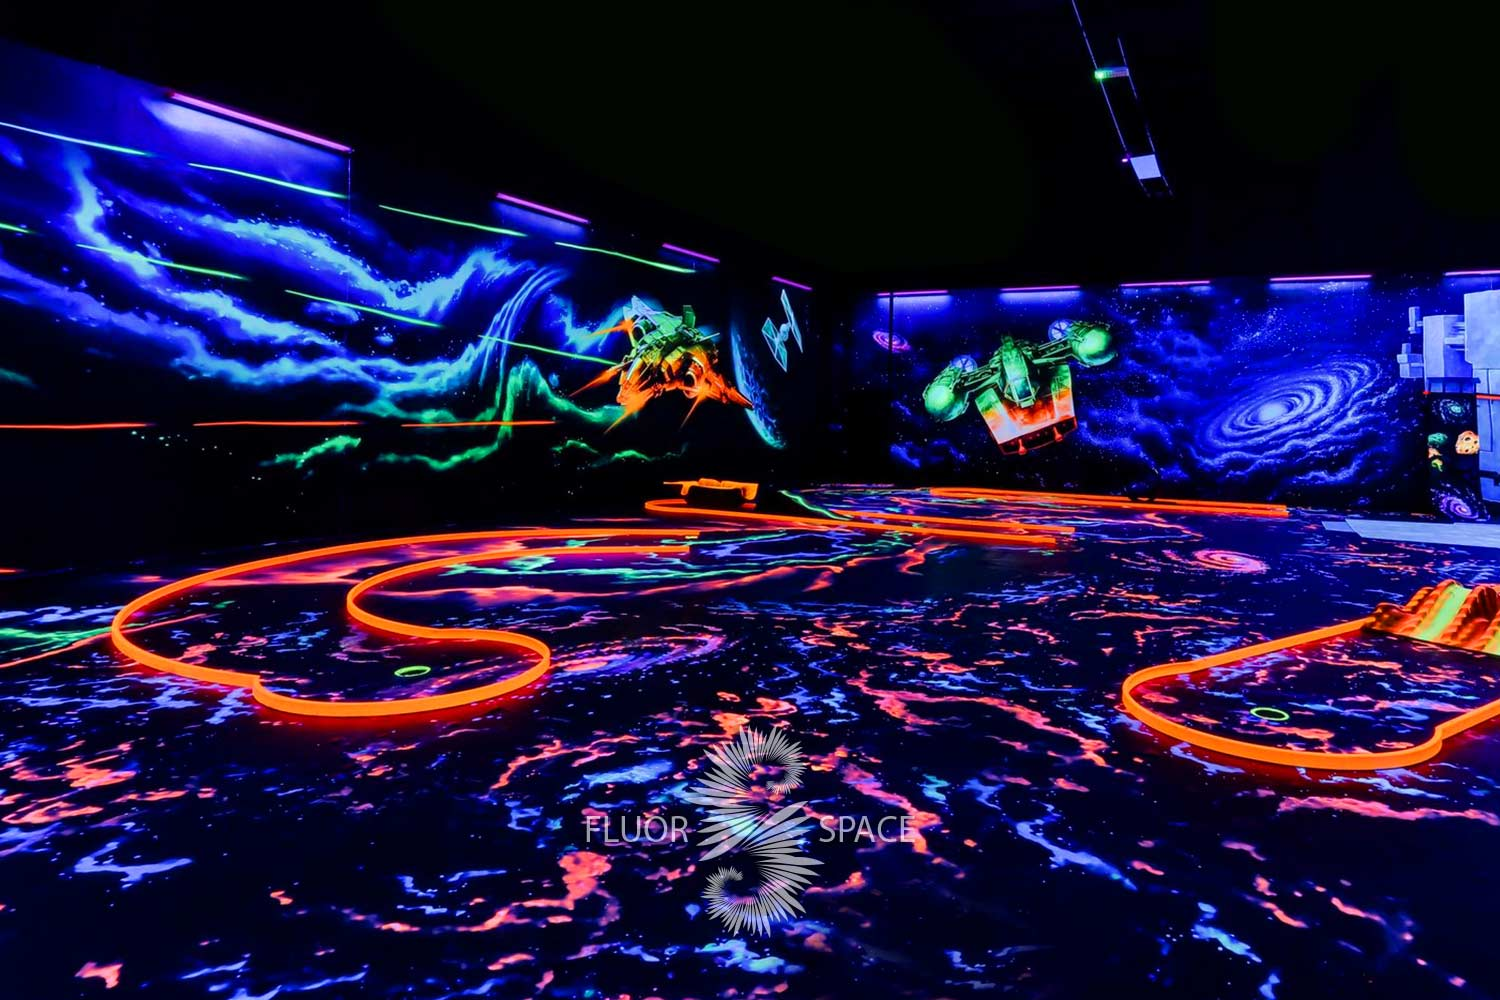 fluorescent-uv-active-3d-decoratin-for-neon-golf